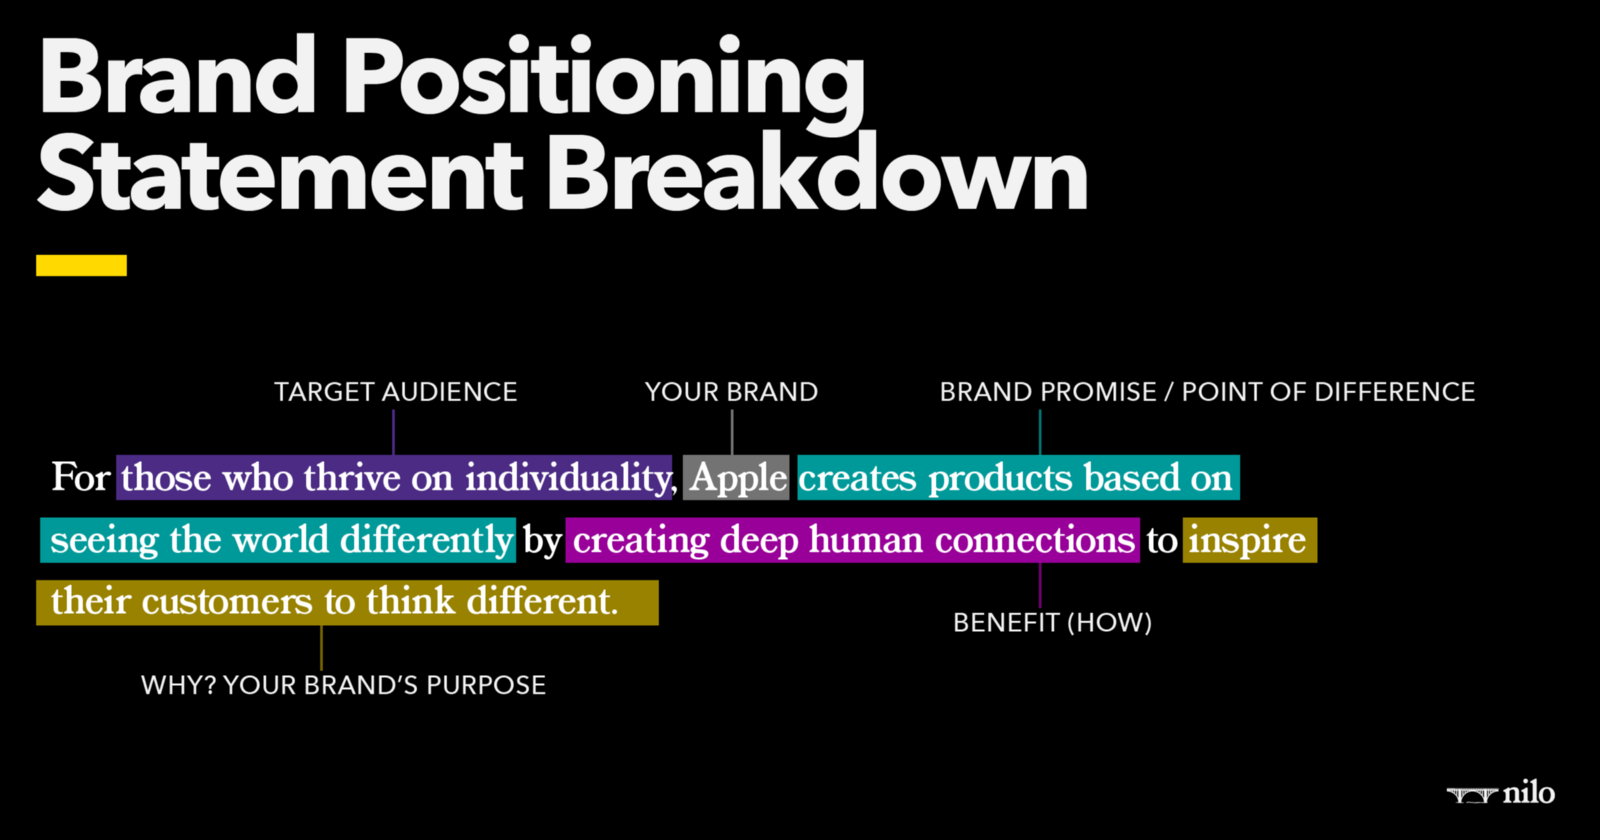 Supporting Image: Brand Positioning Statement Breakdown